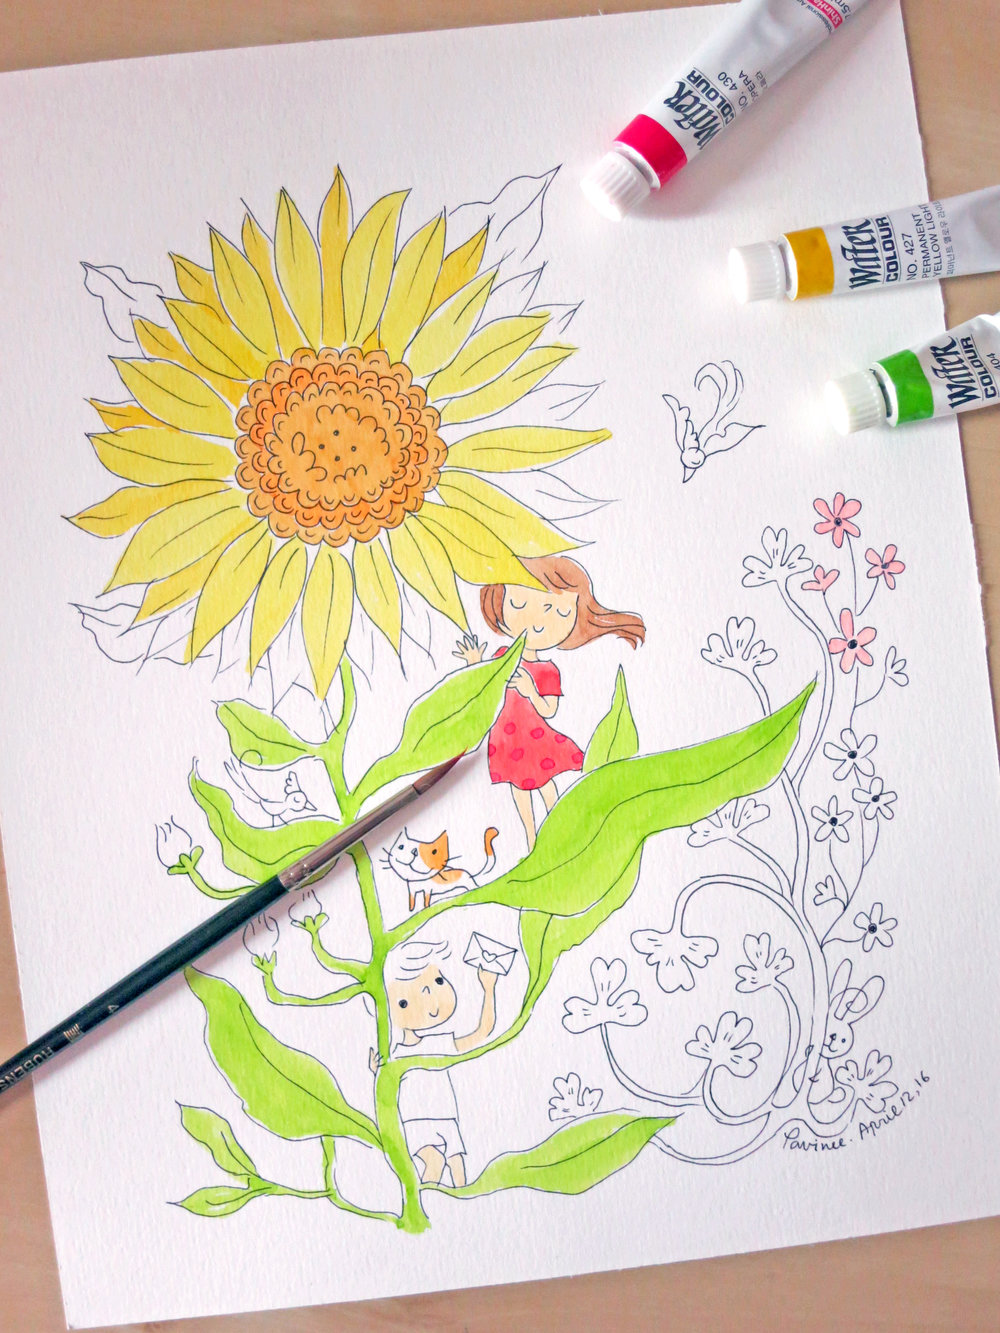 - Merry coloring workshop